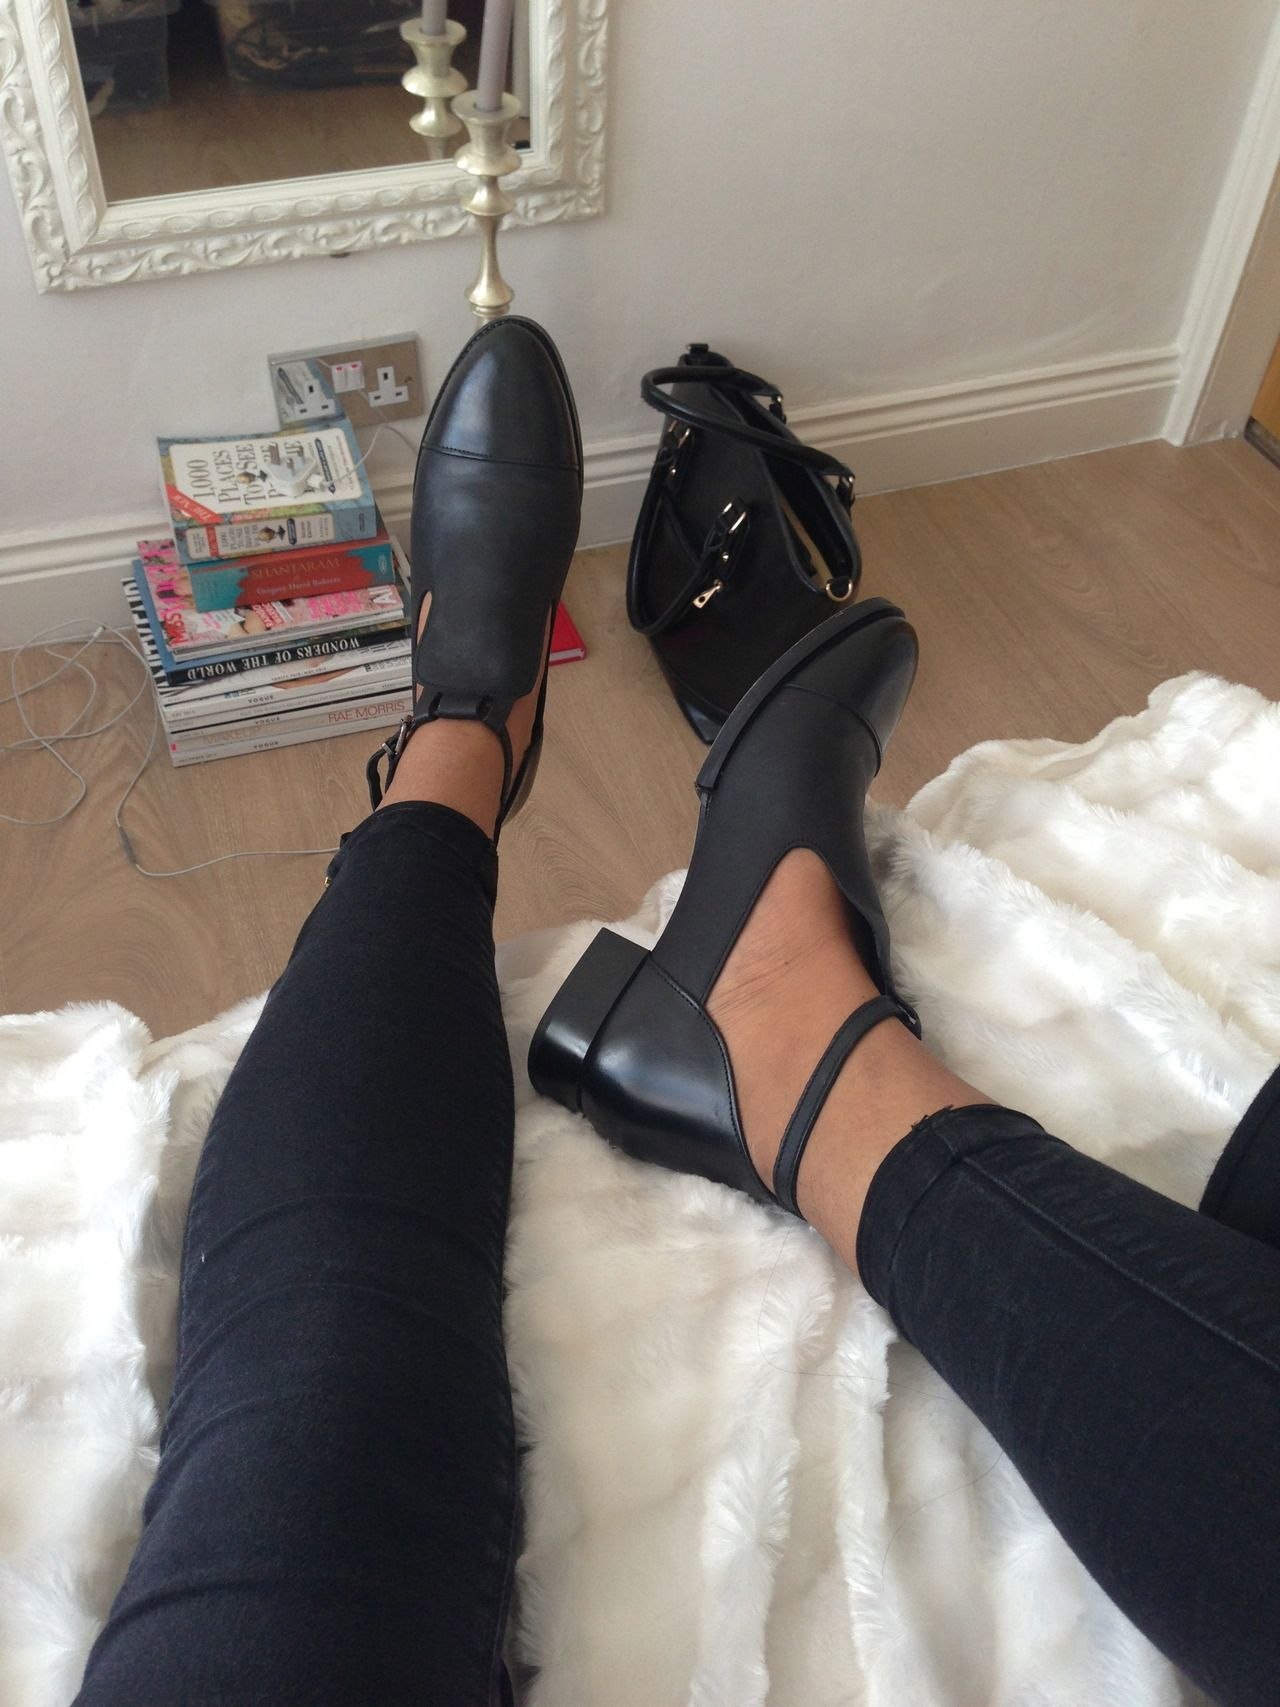 Maryka Burger on shoes | Boots, Shoes